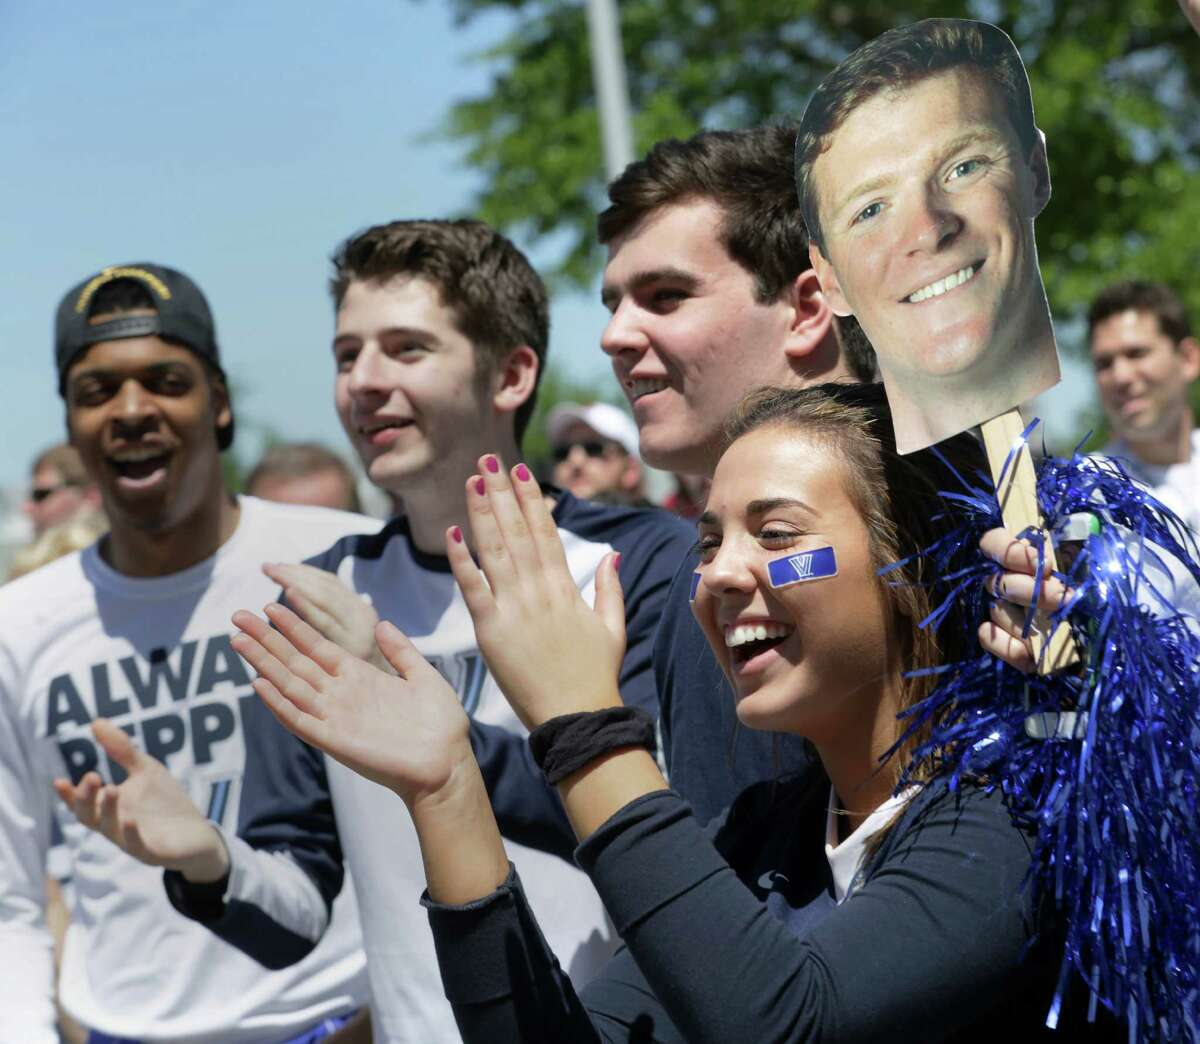 Katelyn O'Donnell, 19, from right, Cris Caggiano, 17, JonPaul Crichton, 20, and Ryan Cooke, cheer for Villanova before game one of the NCAA national semifinals, Saturday, April 2, 2016, in Houston.